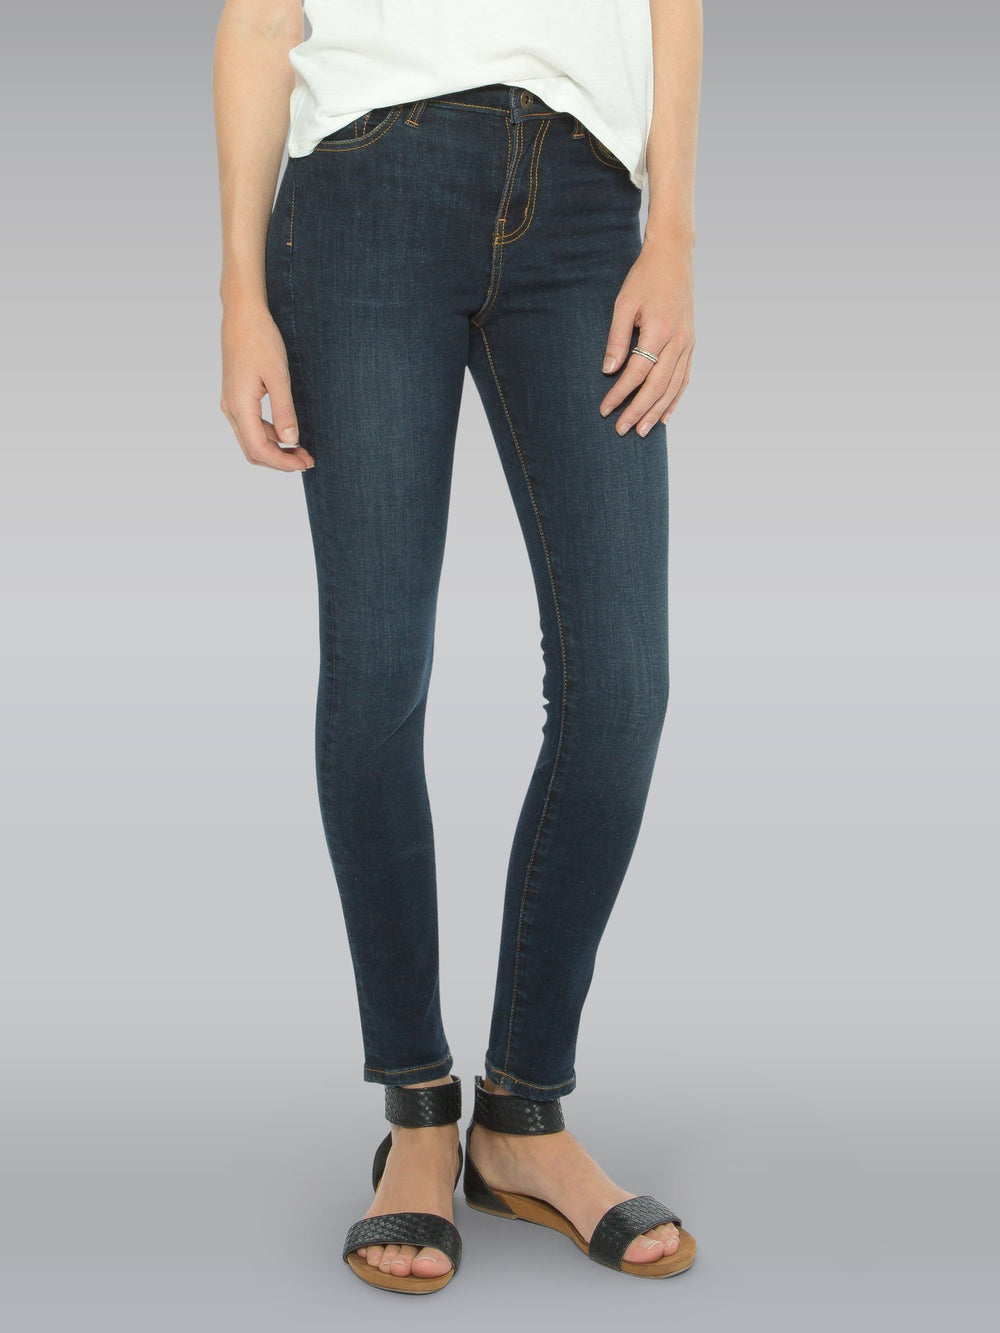 Front view of the Outland Denim Isabel Jean in Black